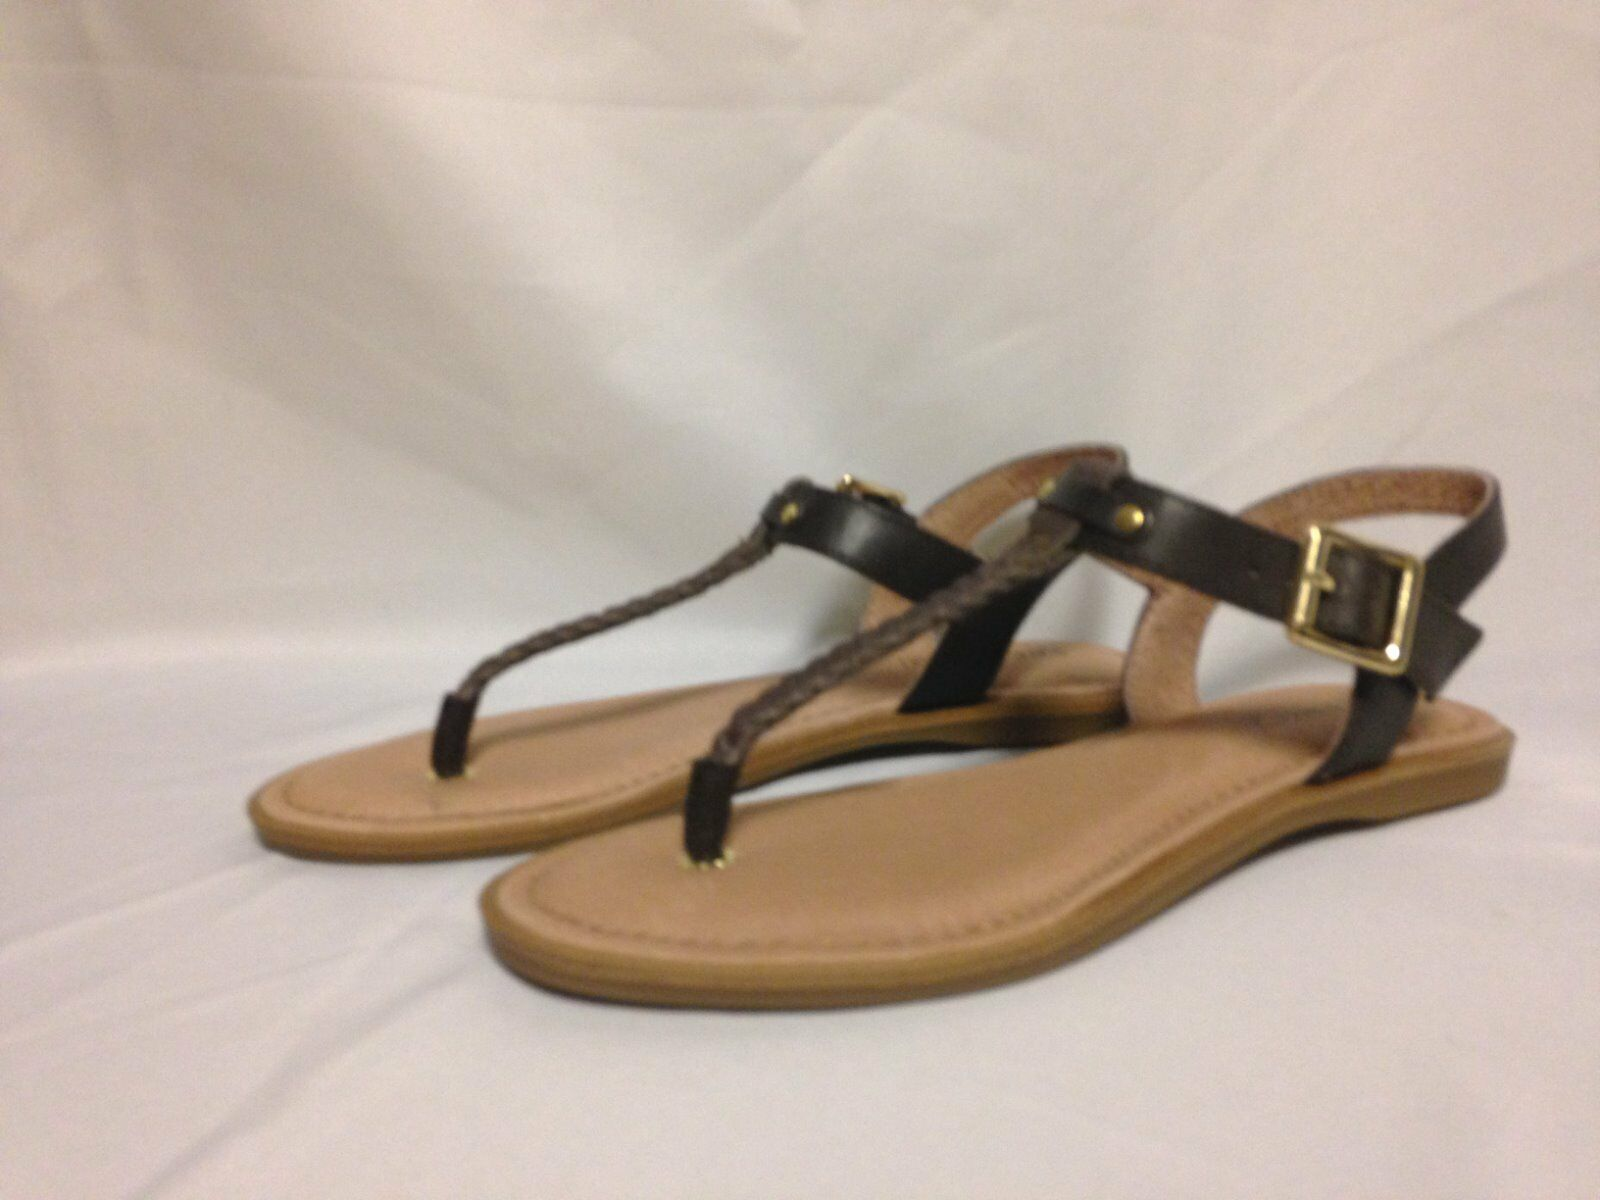 Sperry Top Sider Virginia Sandal 6 M Brown STS93759  New w Box